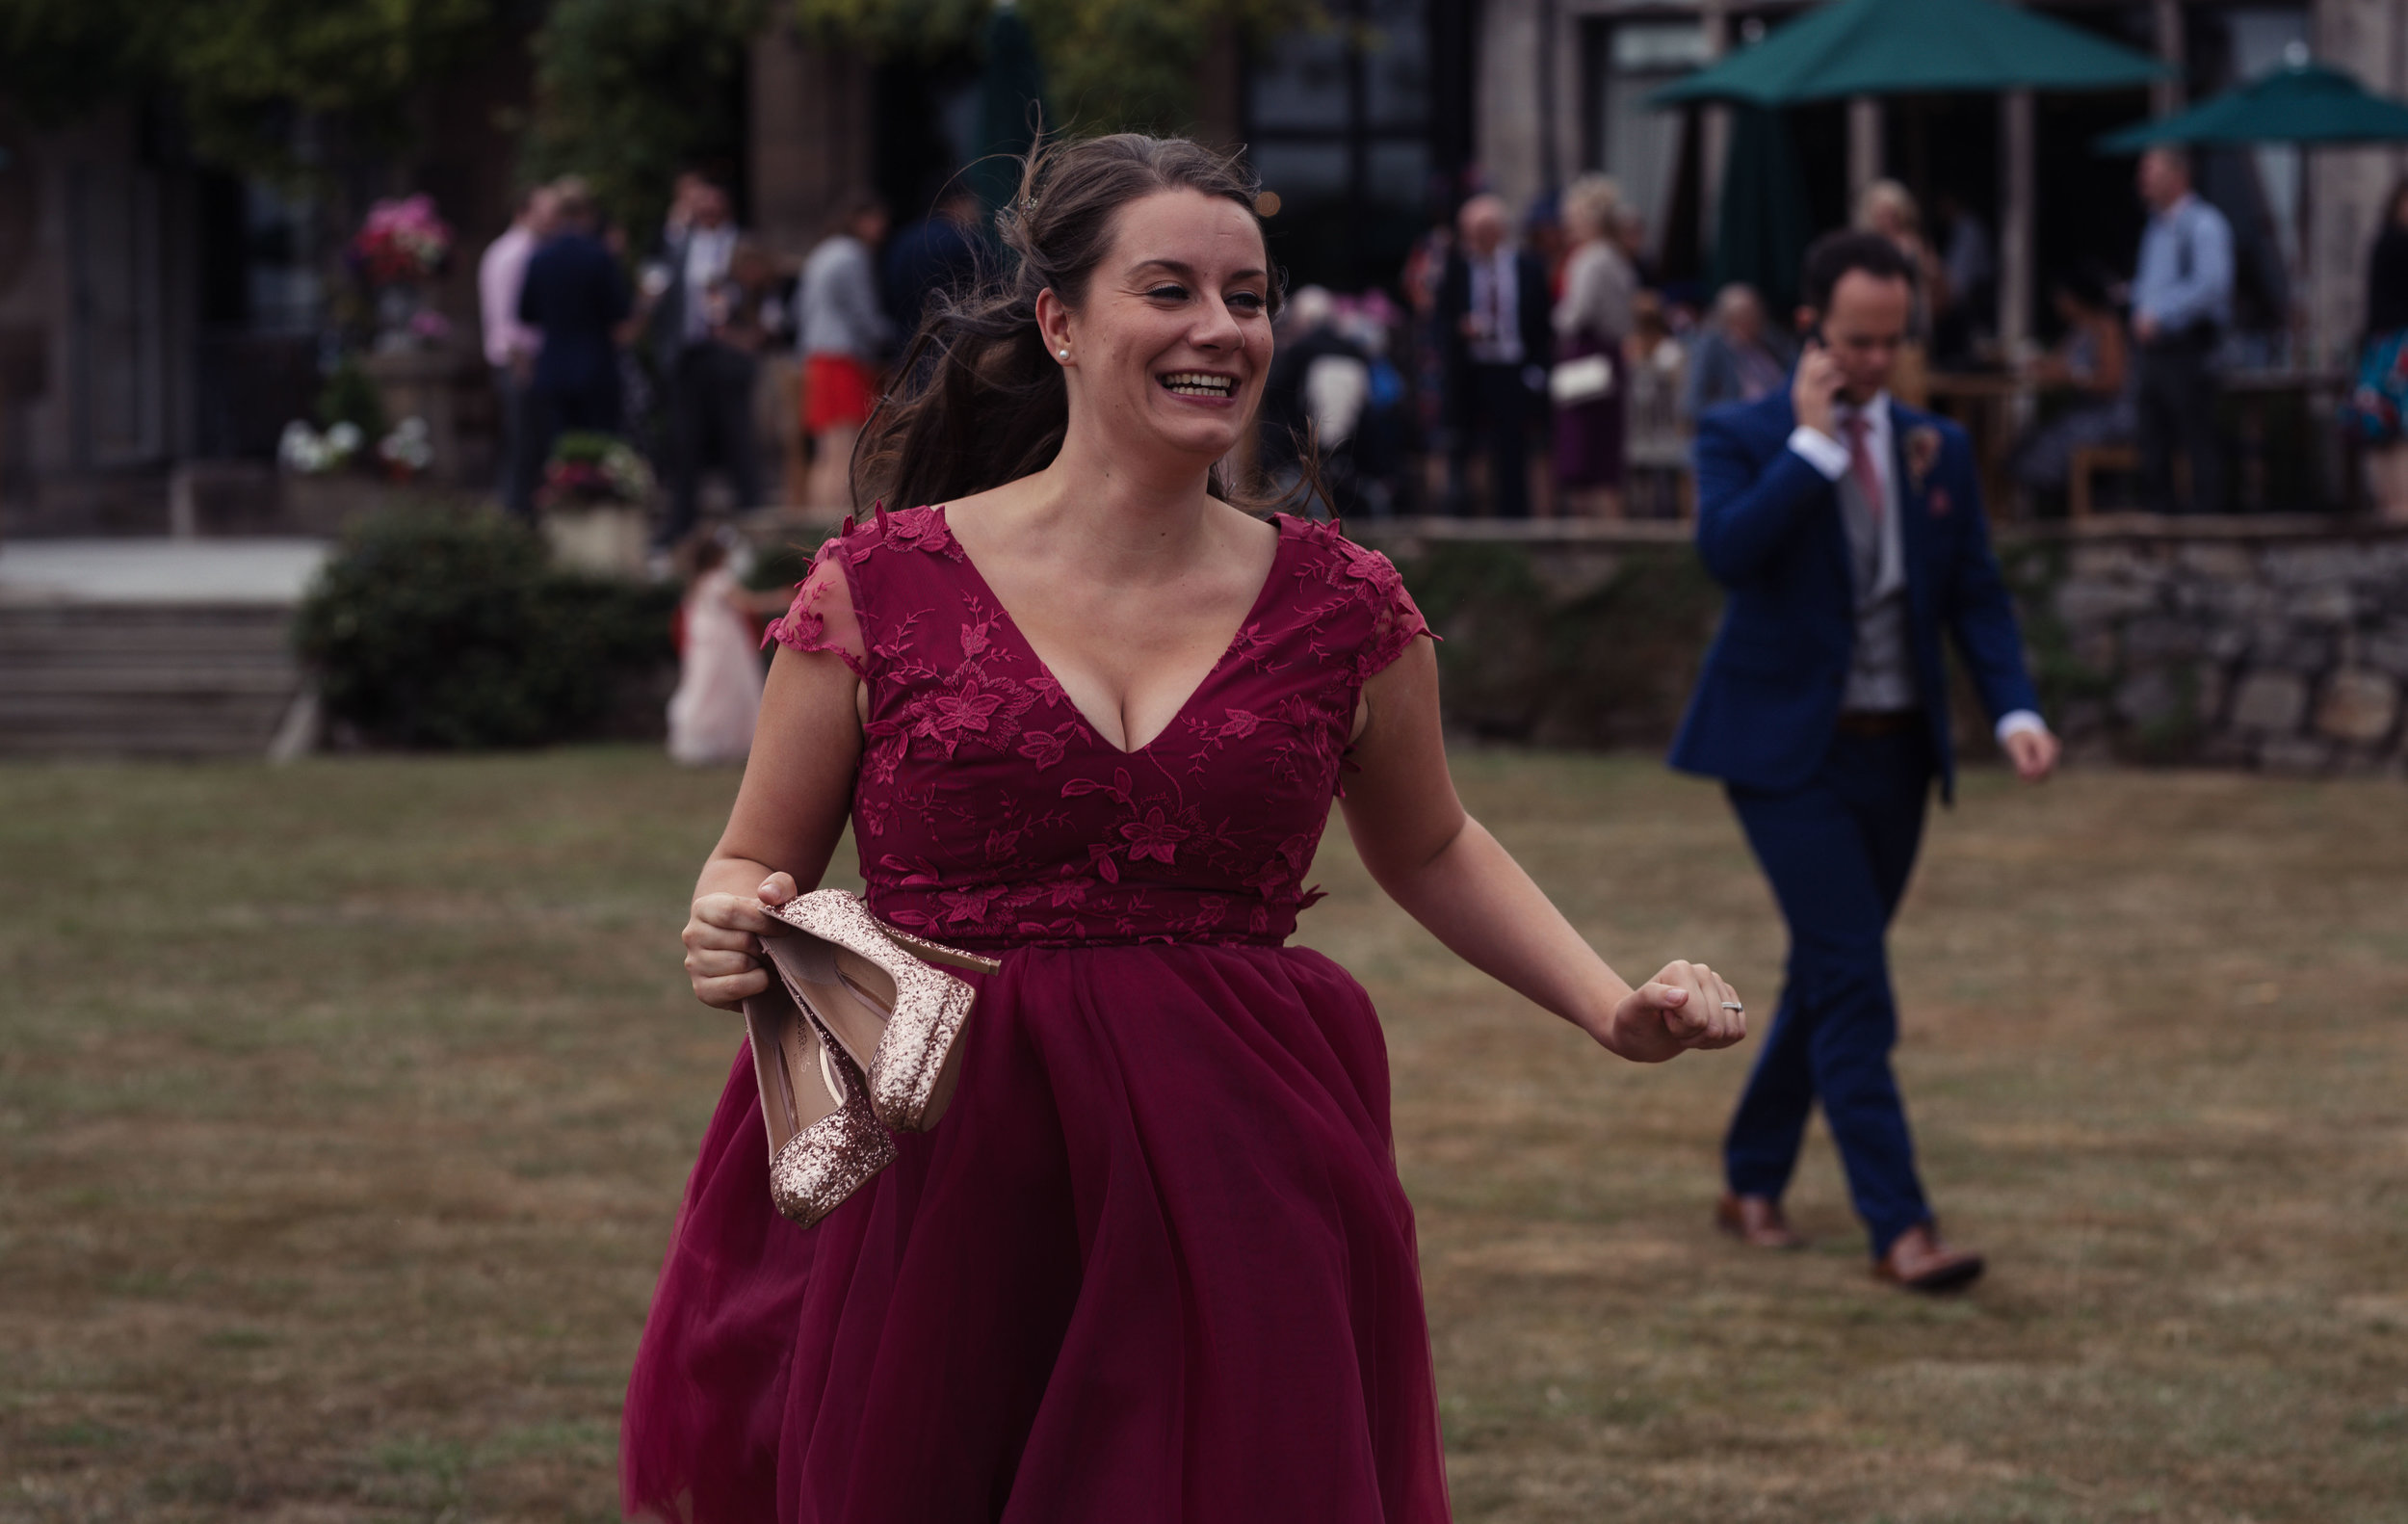 The bridesmaid runs towards the other bridesmaids with her shoes off